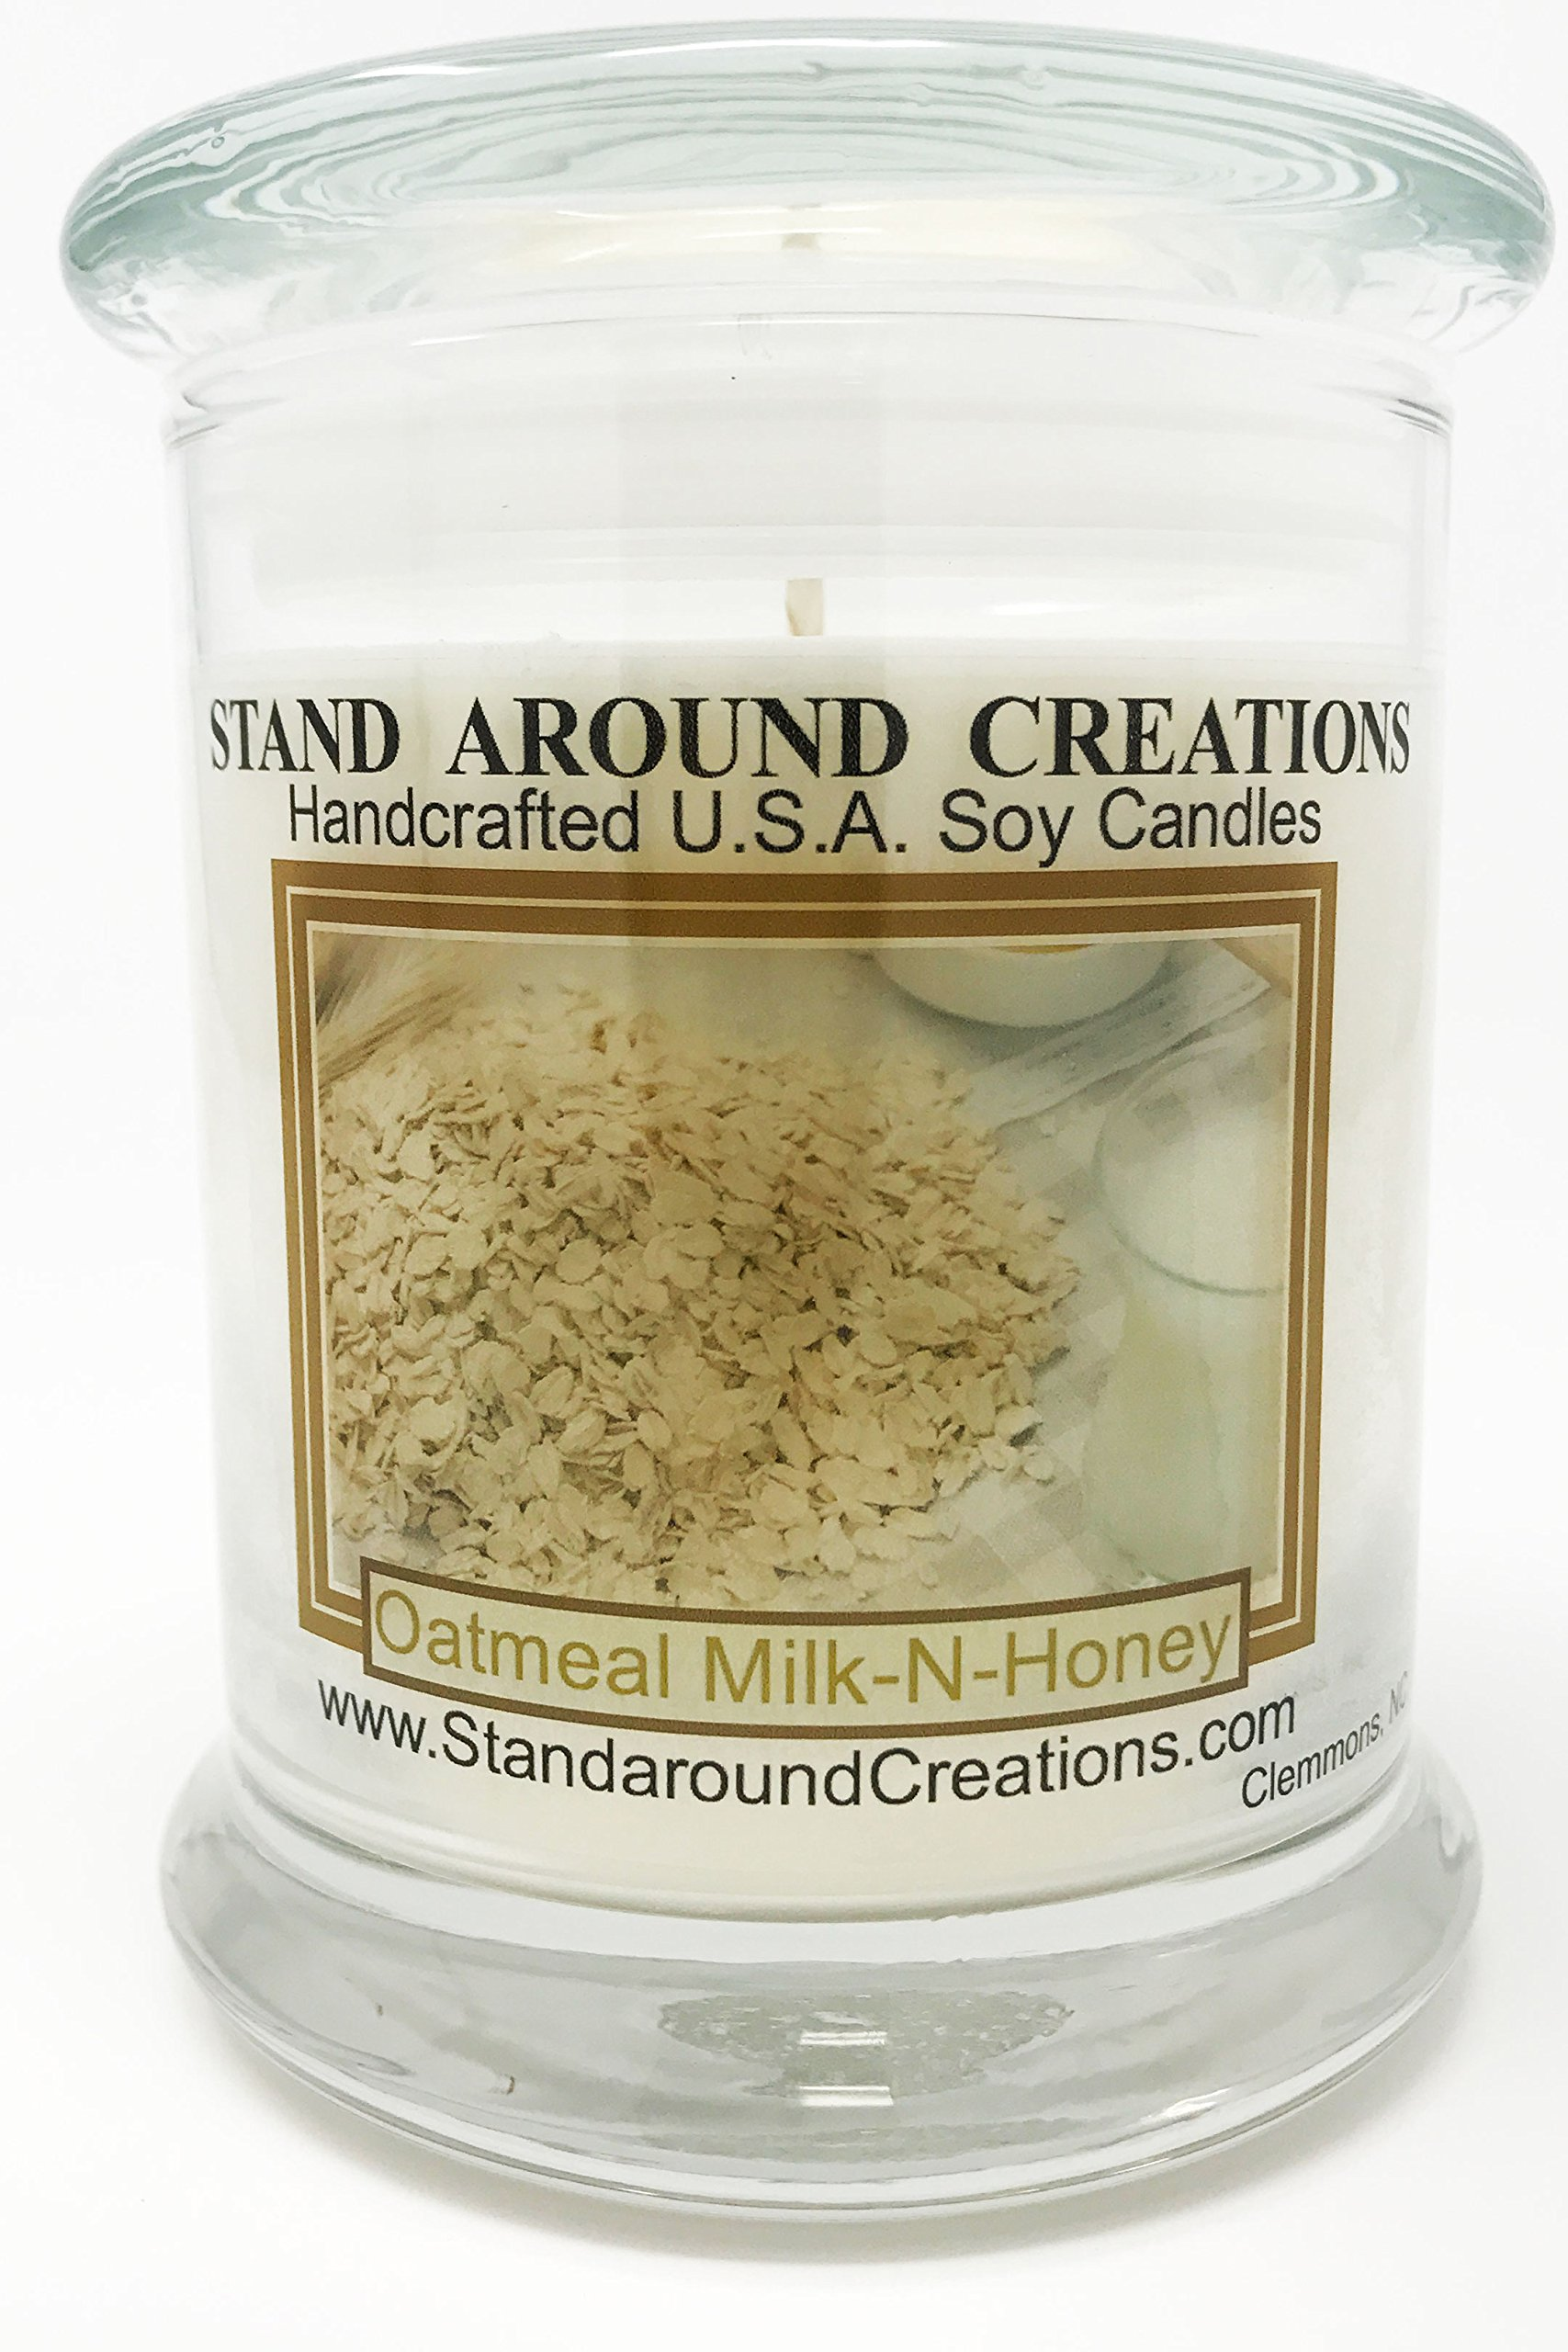 Premium 100% All Natural Soy Candle - 12 oz. Status Jar - Oatmeal Milk & Honey: A rich blend of oatmeal, farm fresh milk and a dollop of honey.